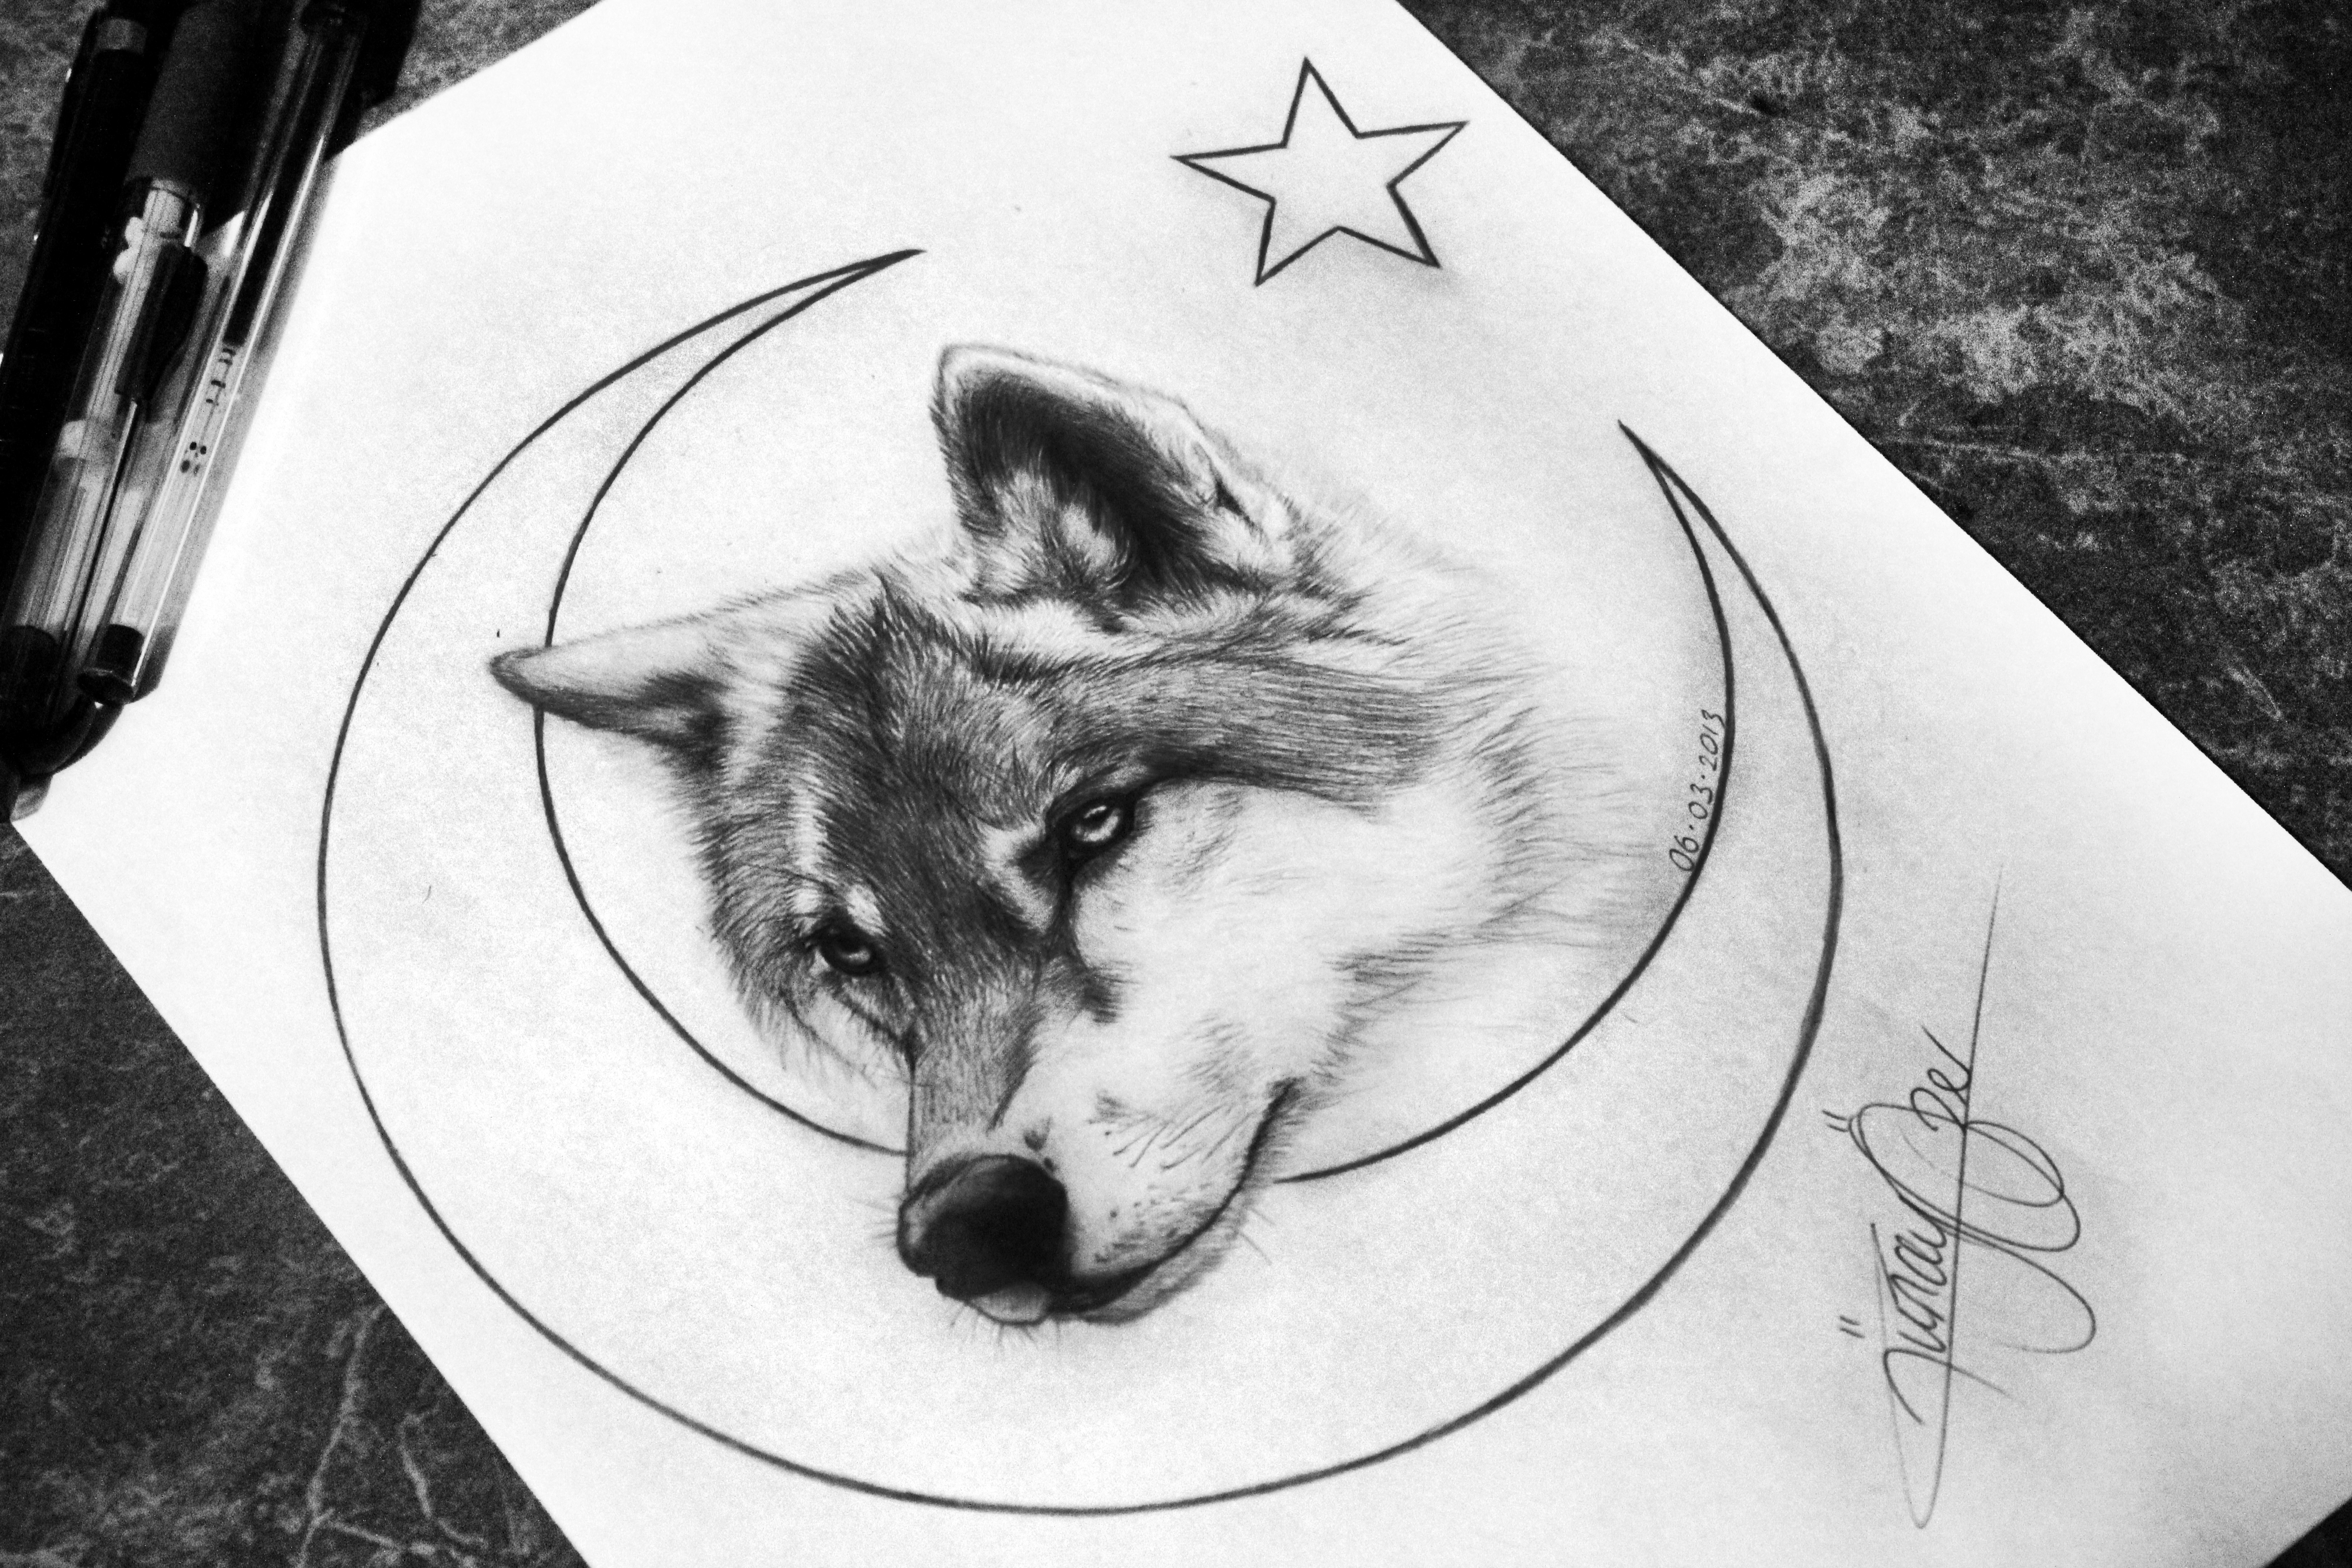 The Lonely Wolf Sketch Turkish Flag Ay Yildiz By